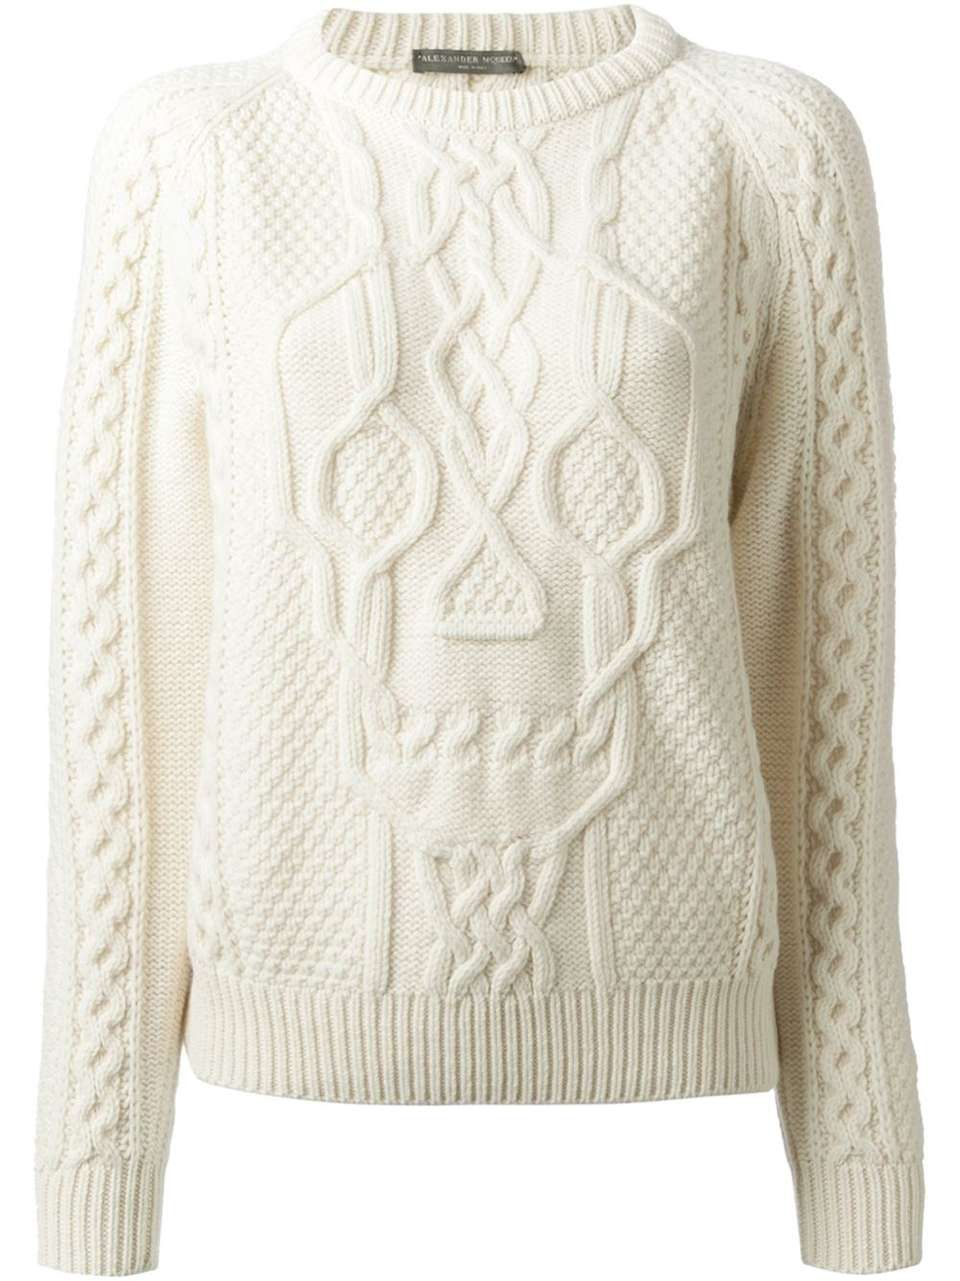 Aran Skull Knit Jumper by Alexander McQueen | knit | Pinterest ...